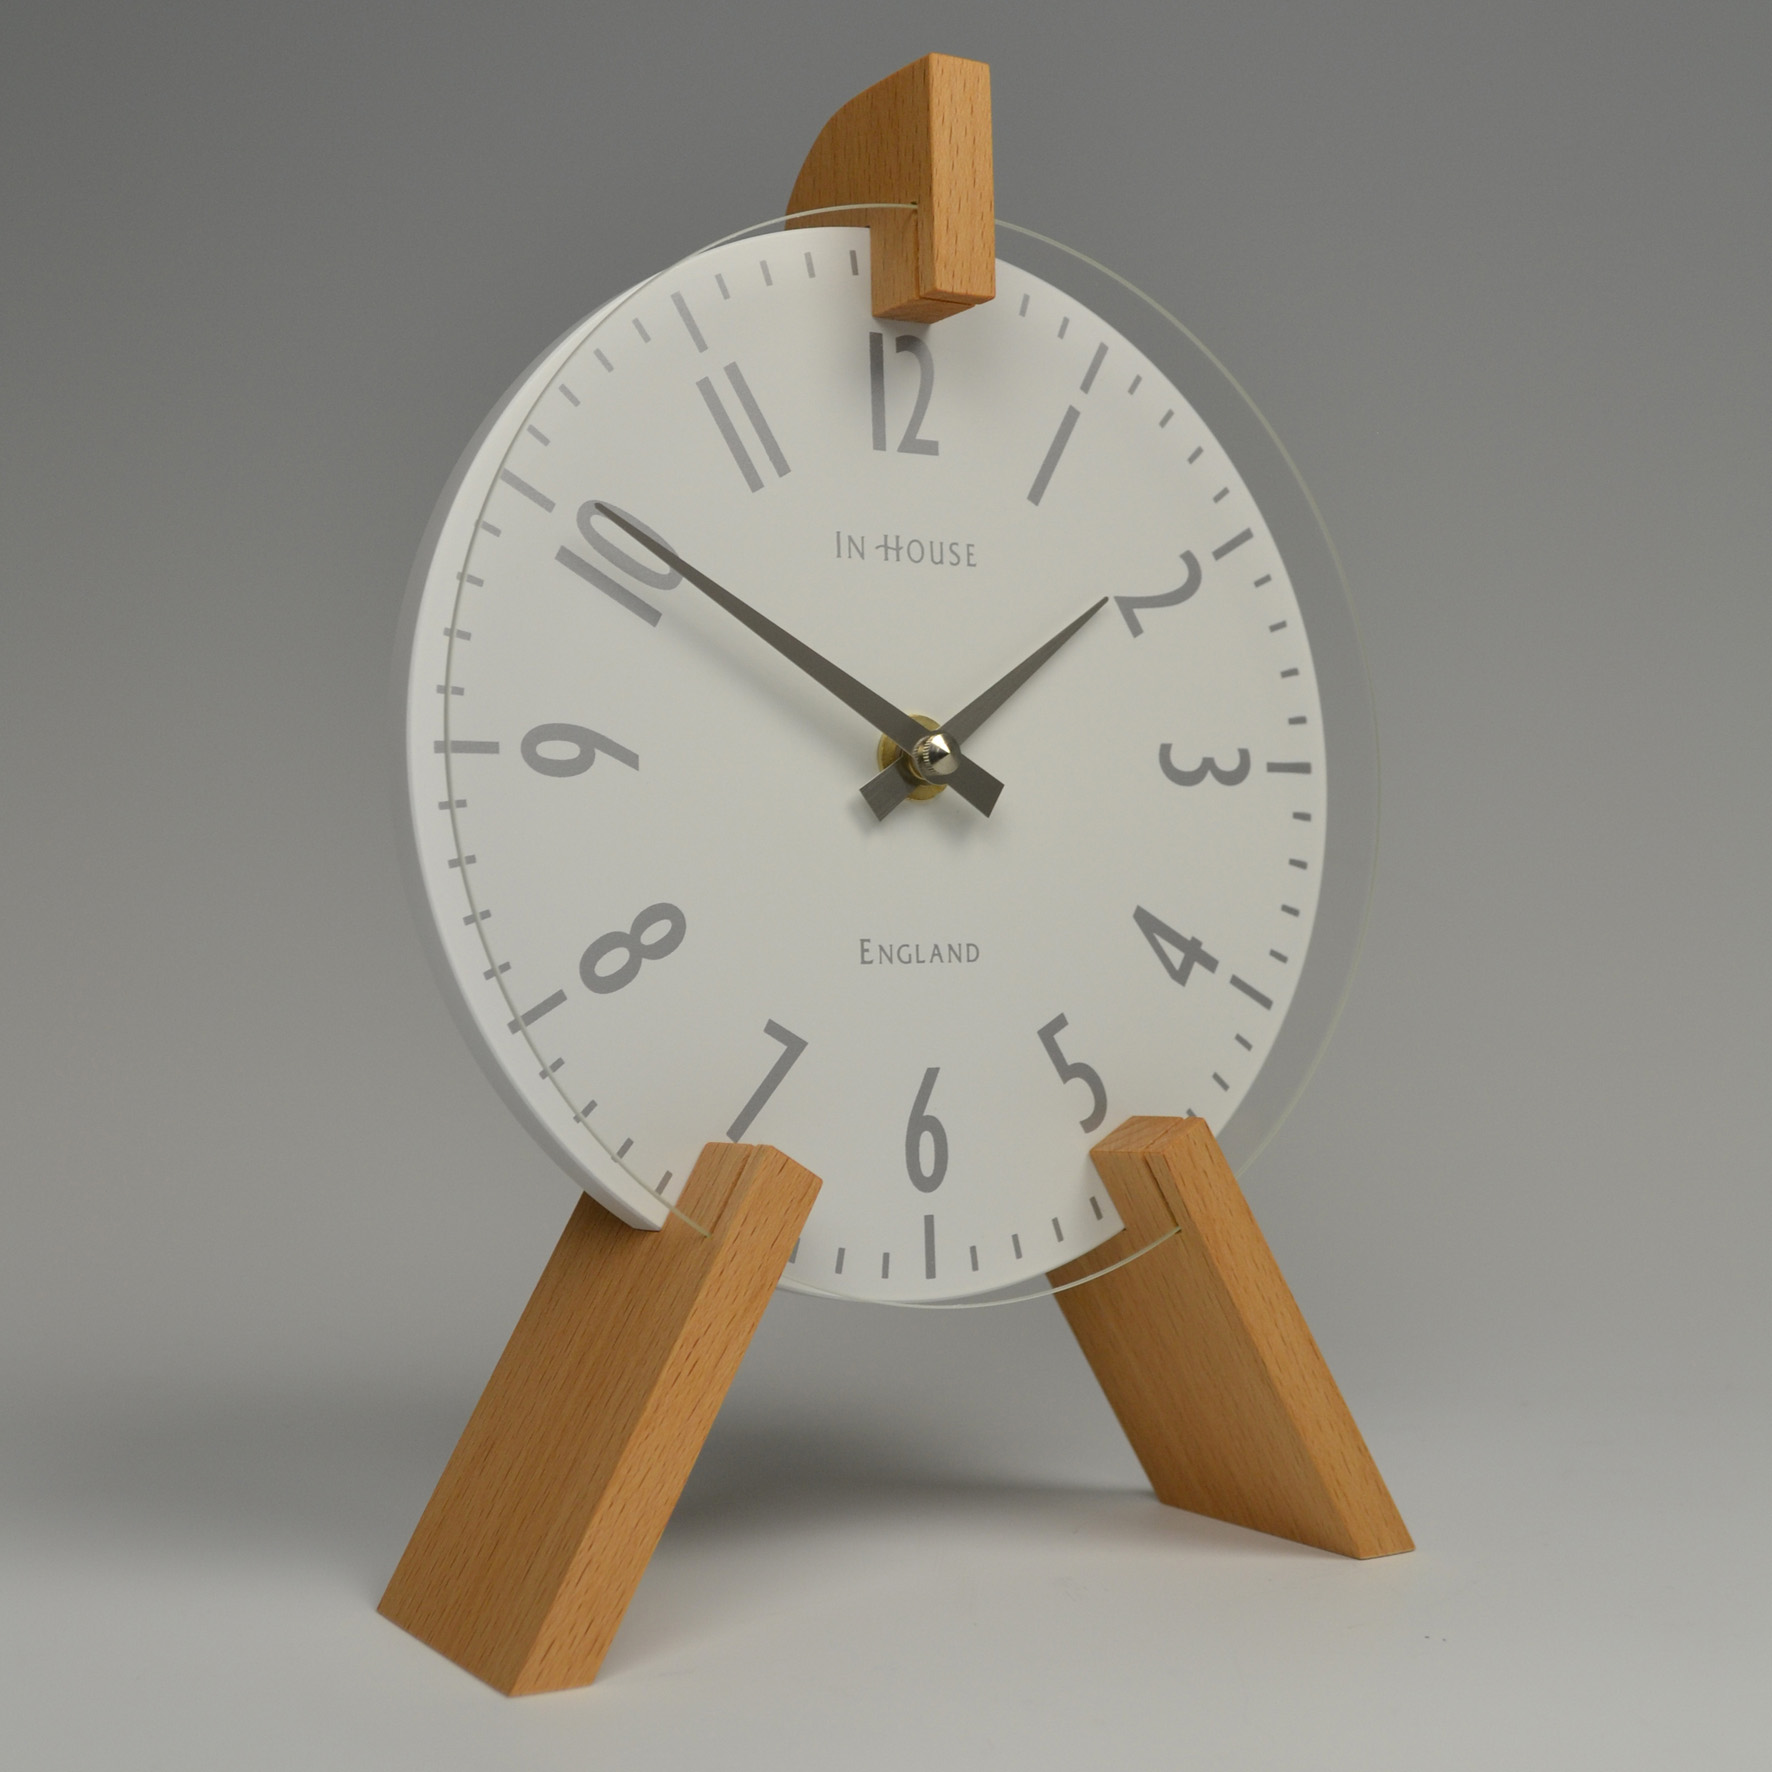 Inhouse clocks | beech wood clock